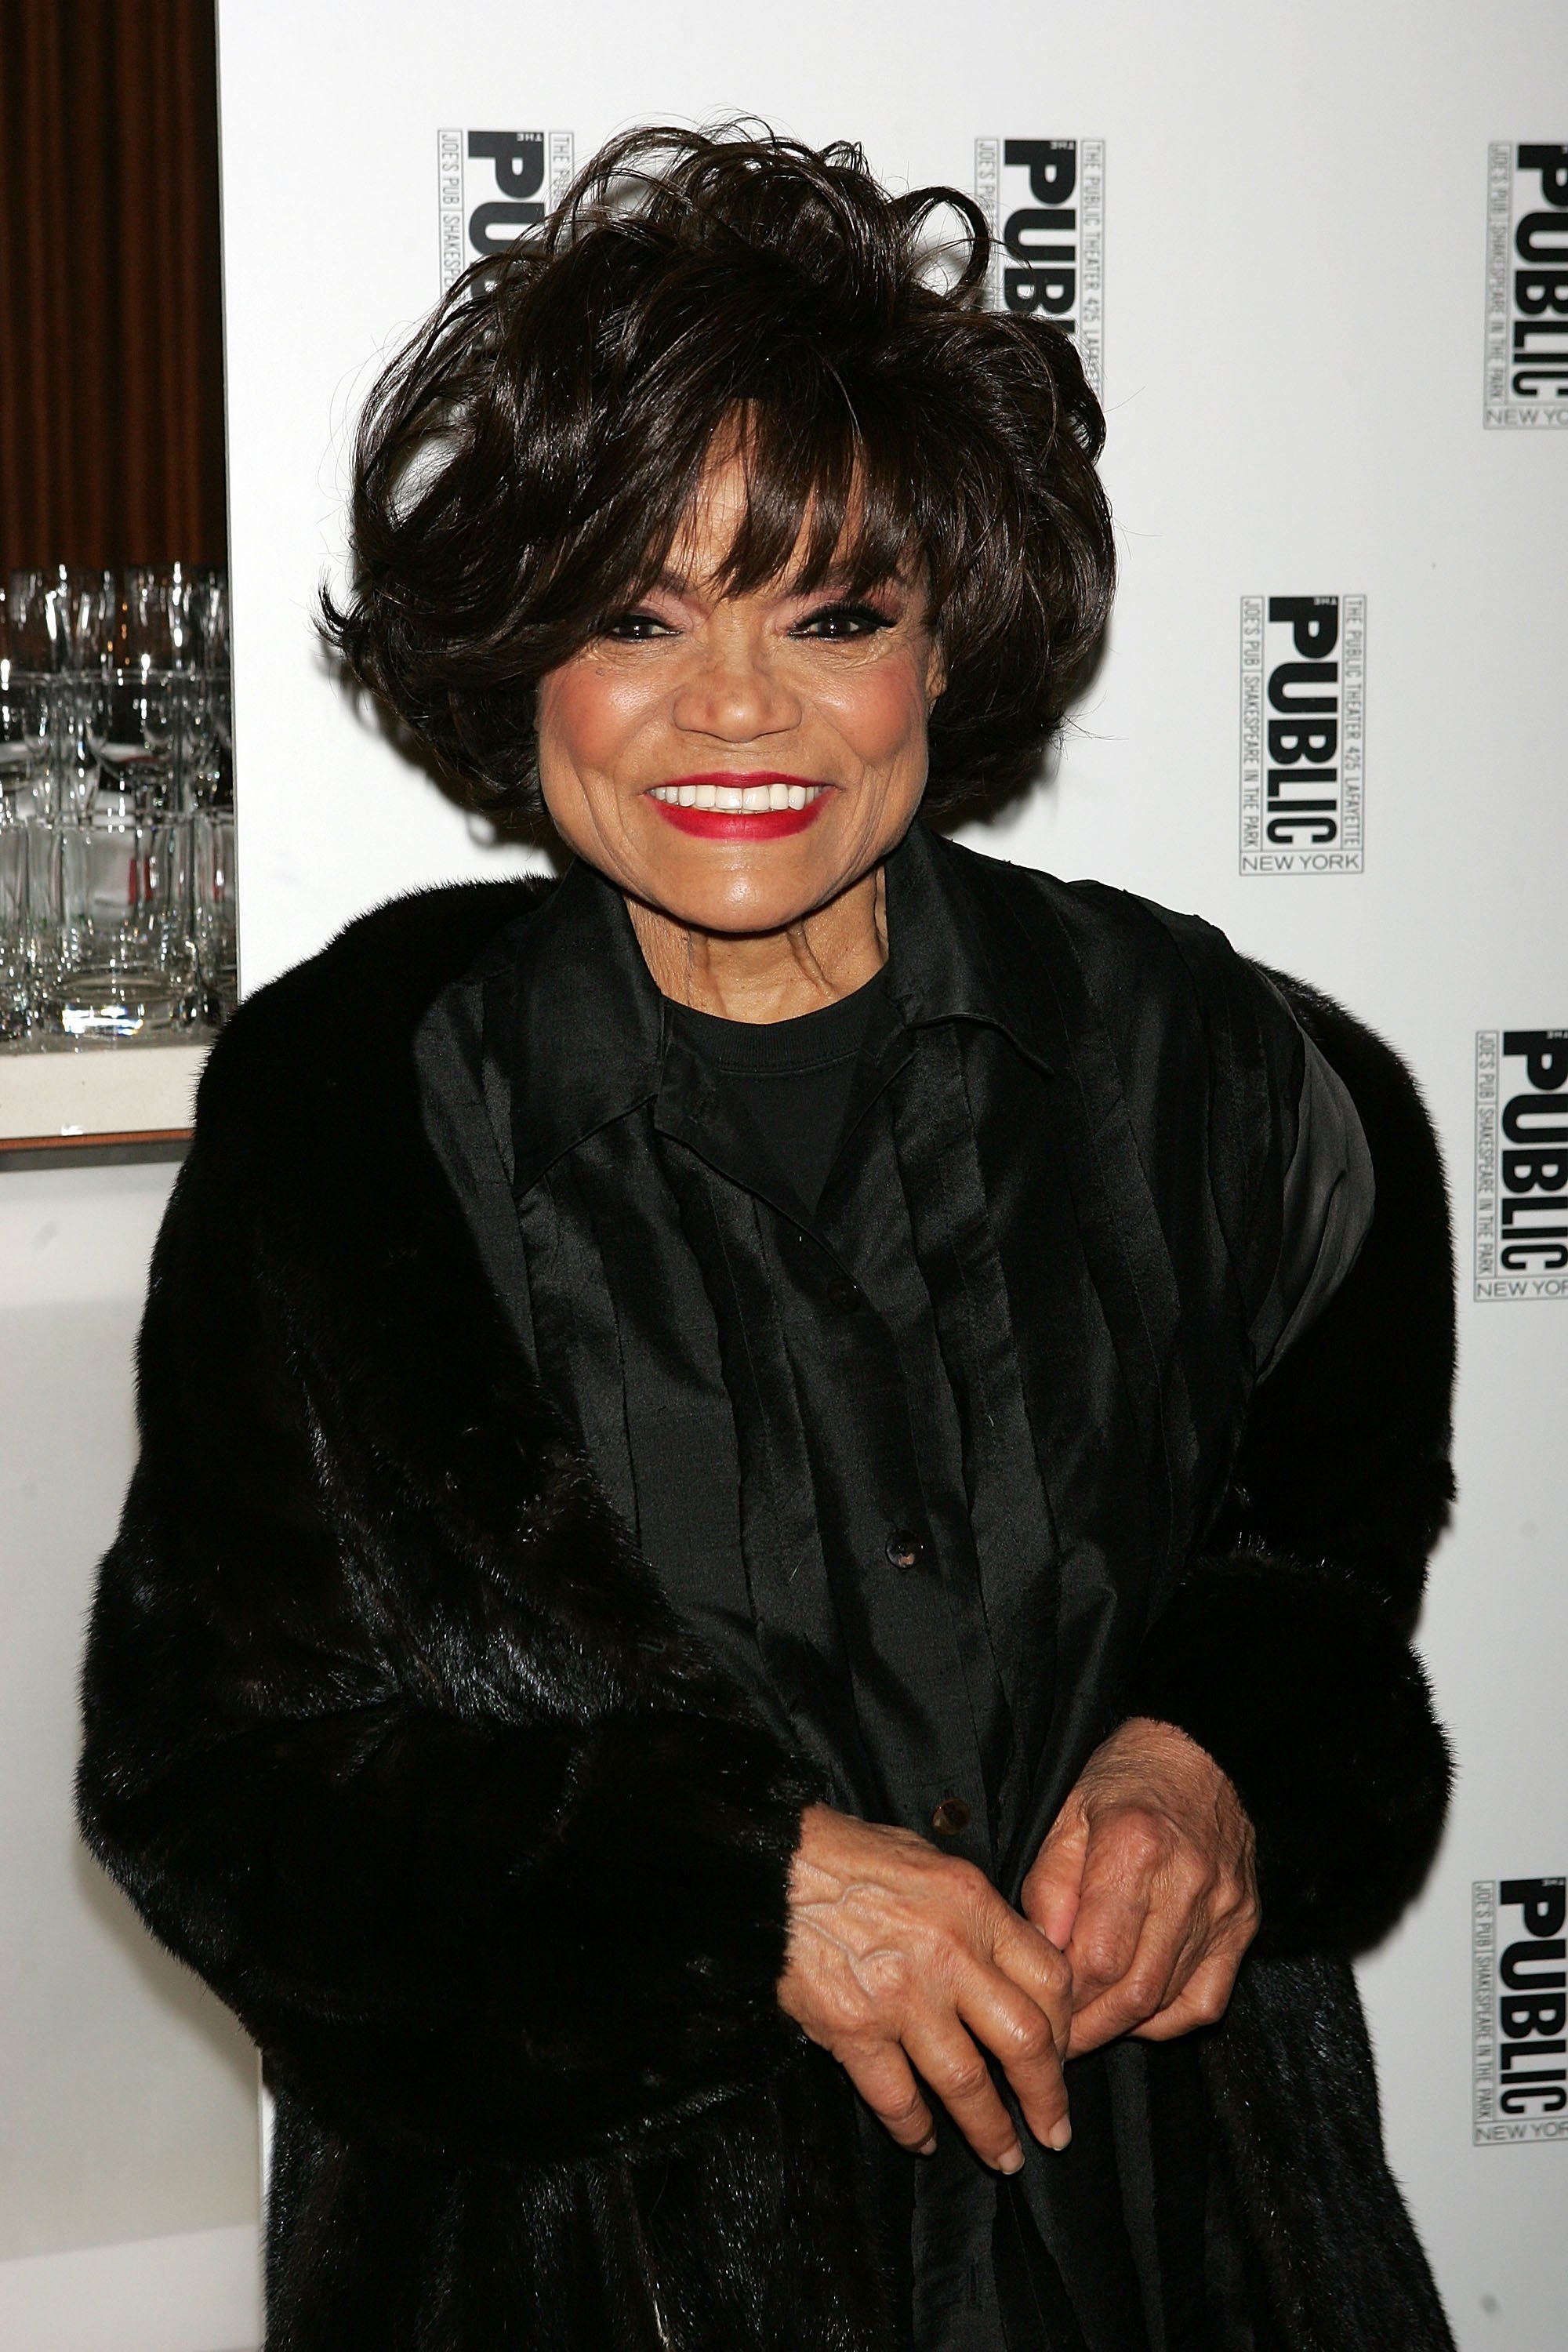 """Eartha Kitt at the after-party for """"The Public Sings: A 50th Anniversary Celebration"""" at the Time Warner Center January 30, 2006, in New York City   Photo: Getty Images"""